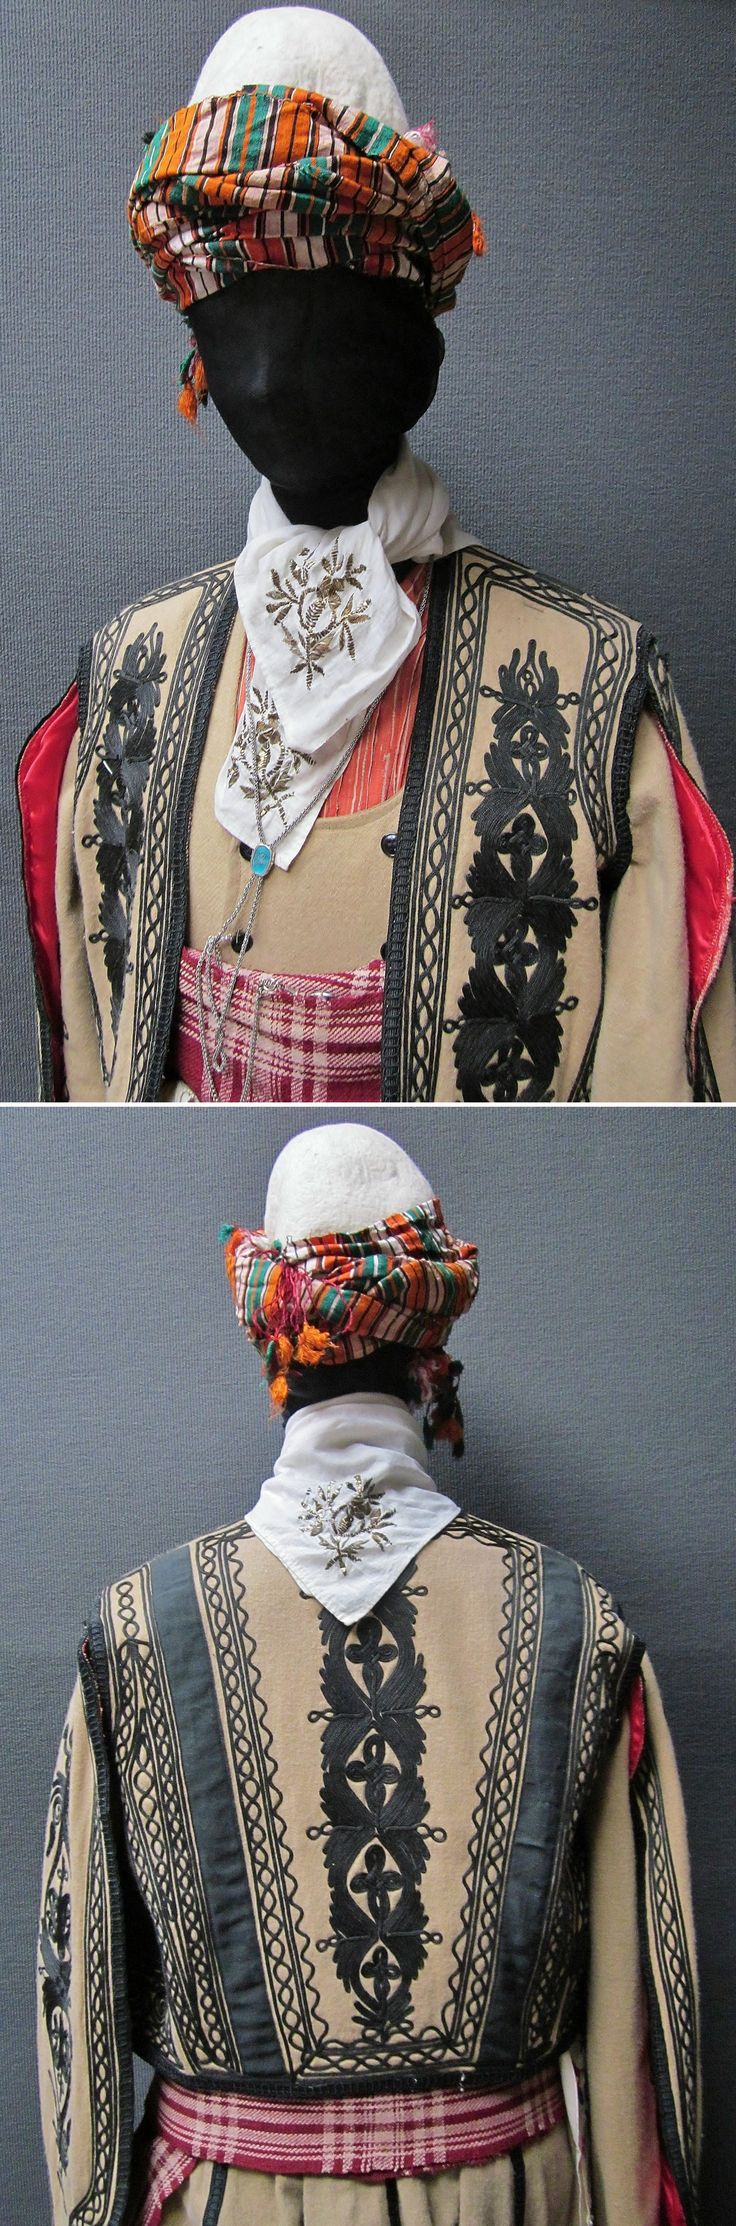 Close-ups of the traditional men's costume from the Silivri district (W of Istanbul). Style: people's militia, ca. 1900. The long-sleeved 'cebedan'/vest & the 'kartal kanat'/outer vest (with hanging sleeves) are workshop-made machine-embroidered copies (1990), as worn by folk dance groups. The accessories are original (some of them old:1900-'60): woollen 'kuşak'/belt, embroidered kerchiefs, silver chain, silk headscarf, felt hat. (Kavak Folklor Ekibi & Costume Collection…